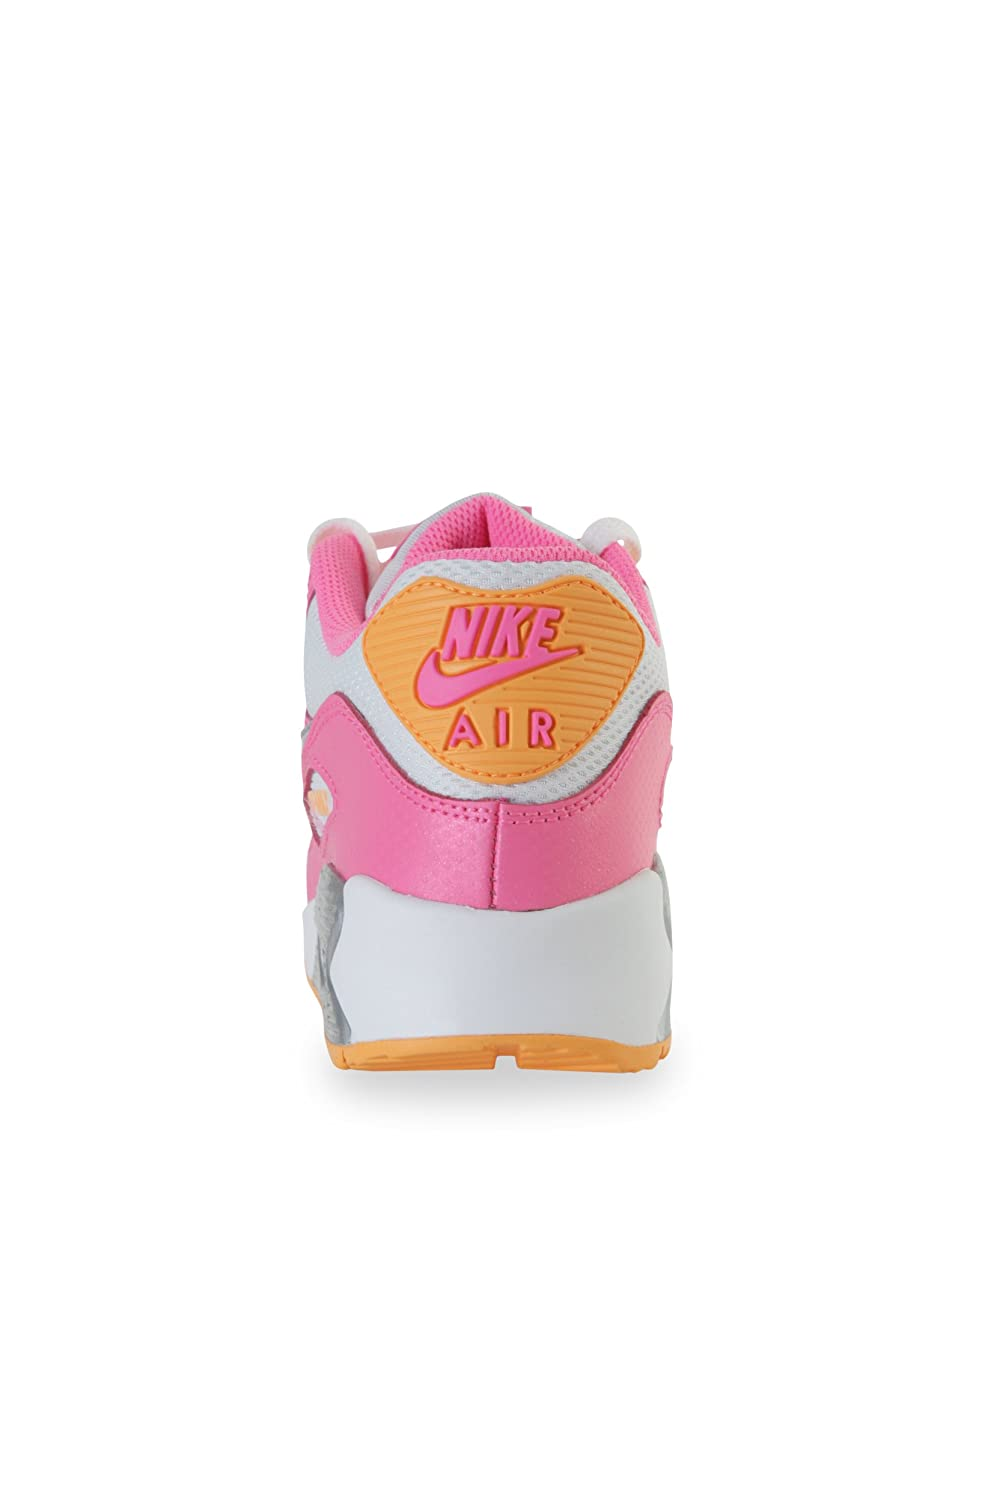 9ba64e5ea018 Nike Air Max 90 (GS) 345017 120 Pink   Orange UK 3.5-5.9  Amazon.co.uk   Shoes   Bags